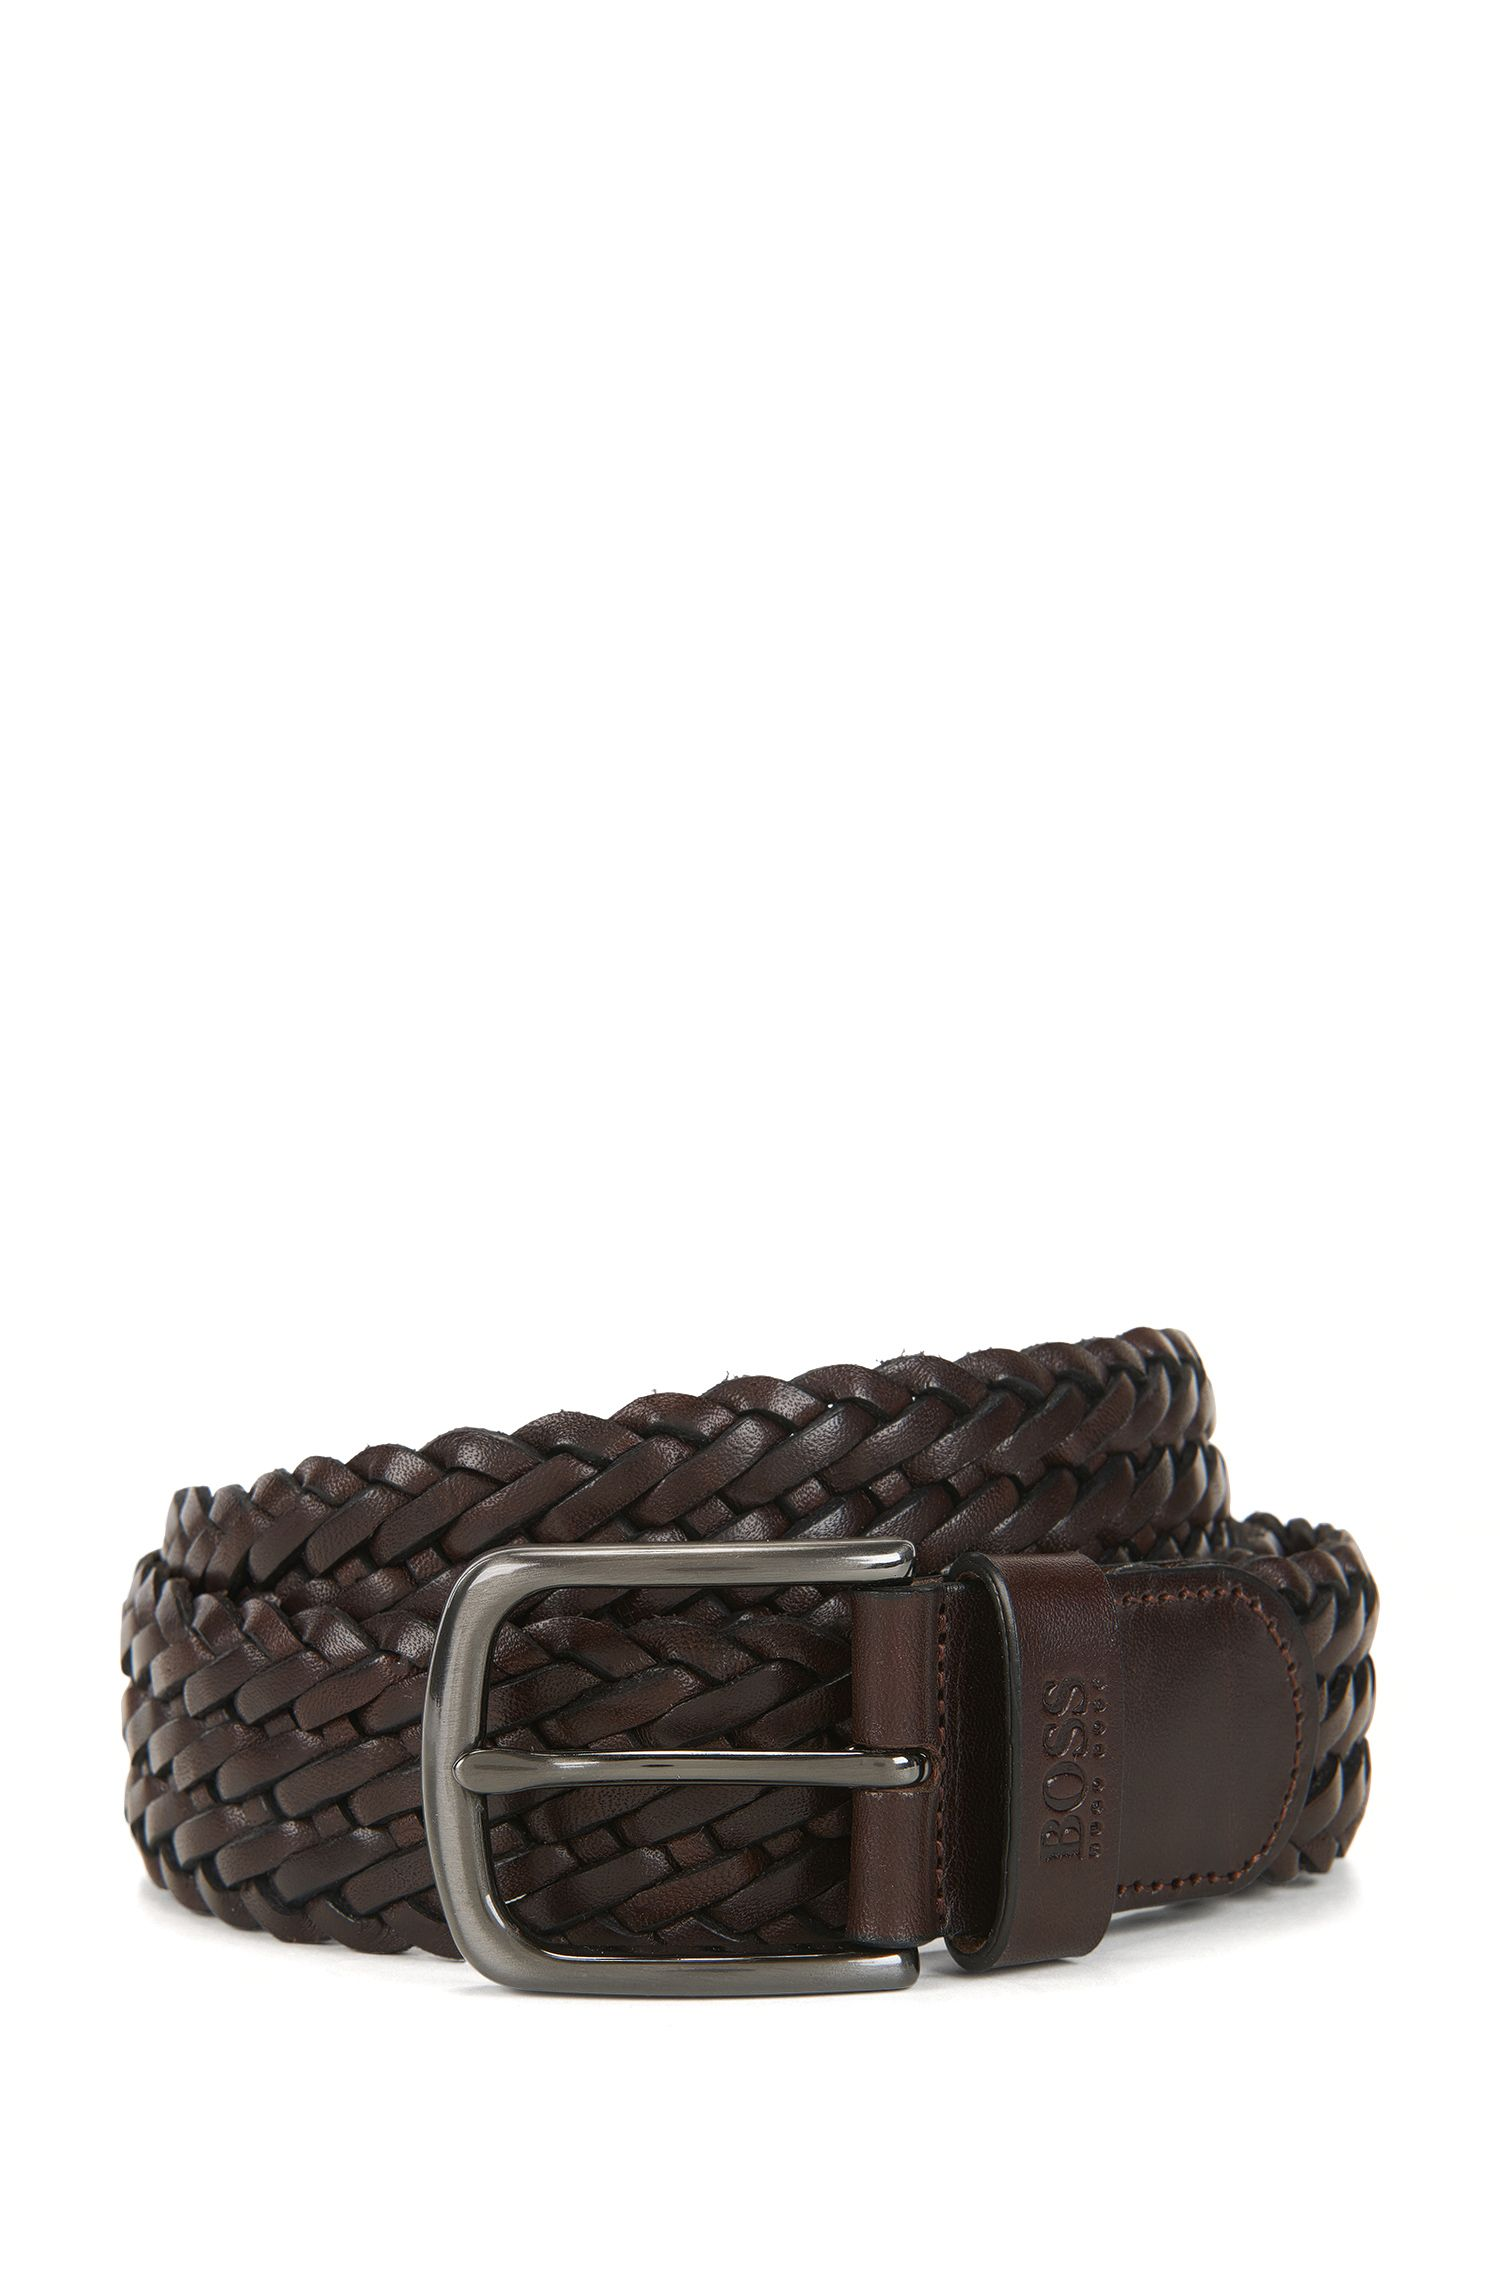 Woven leather belt with gunmetal pin-buckle